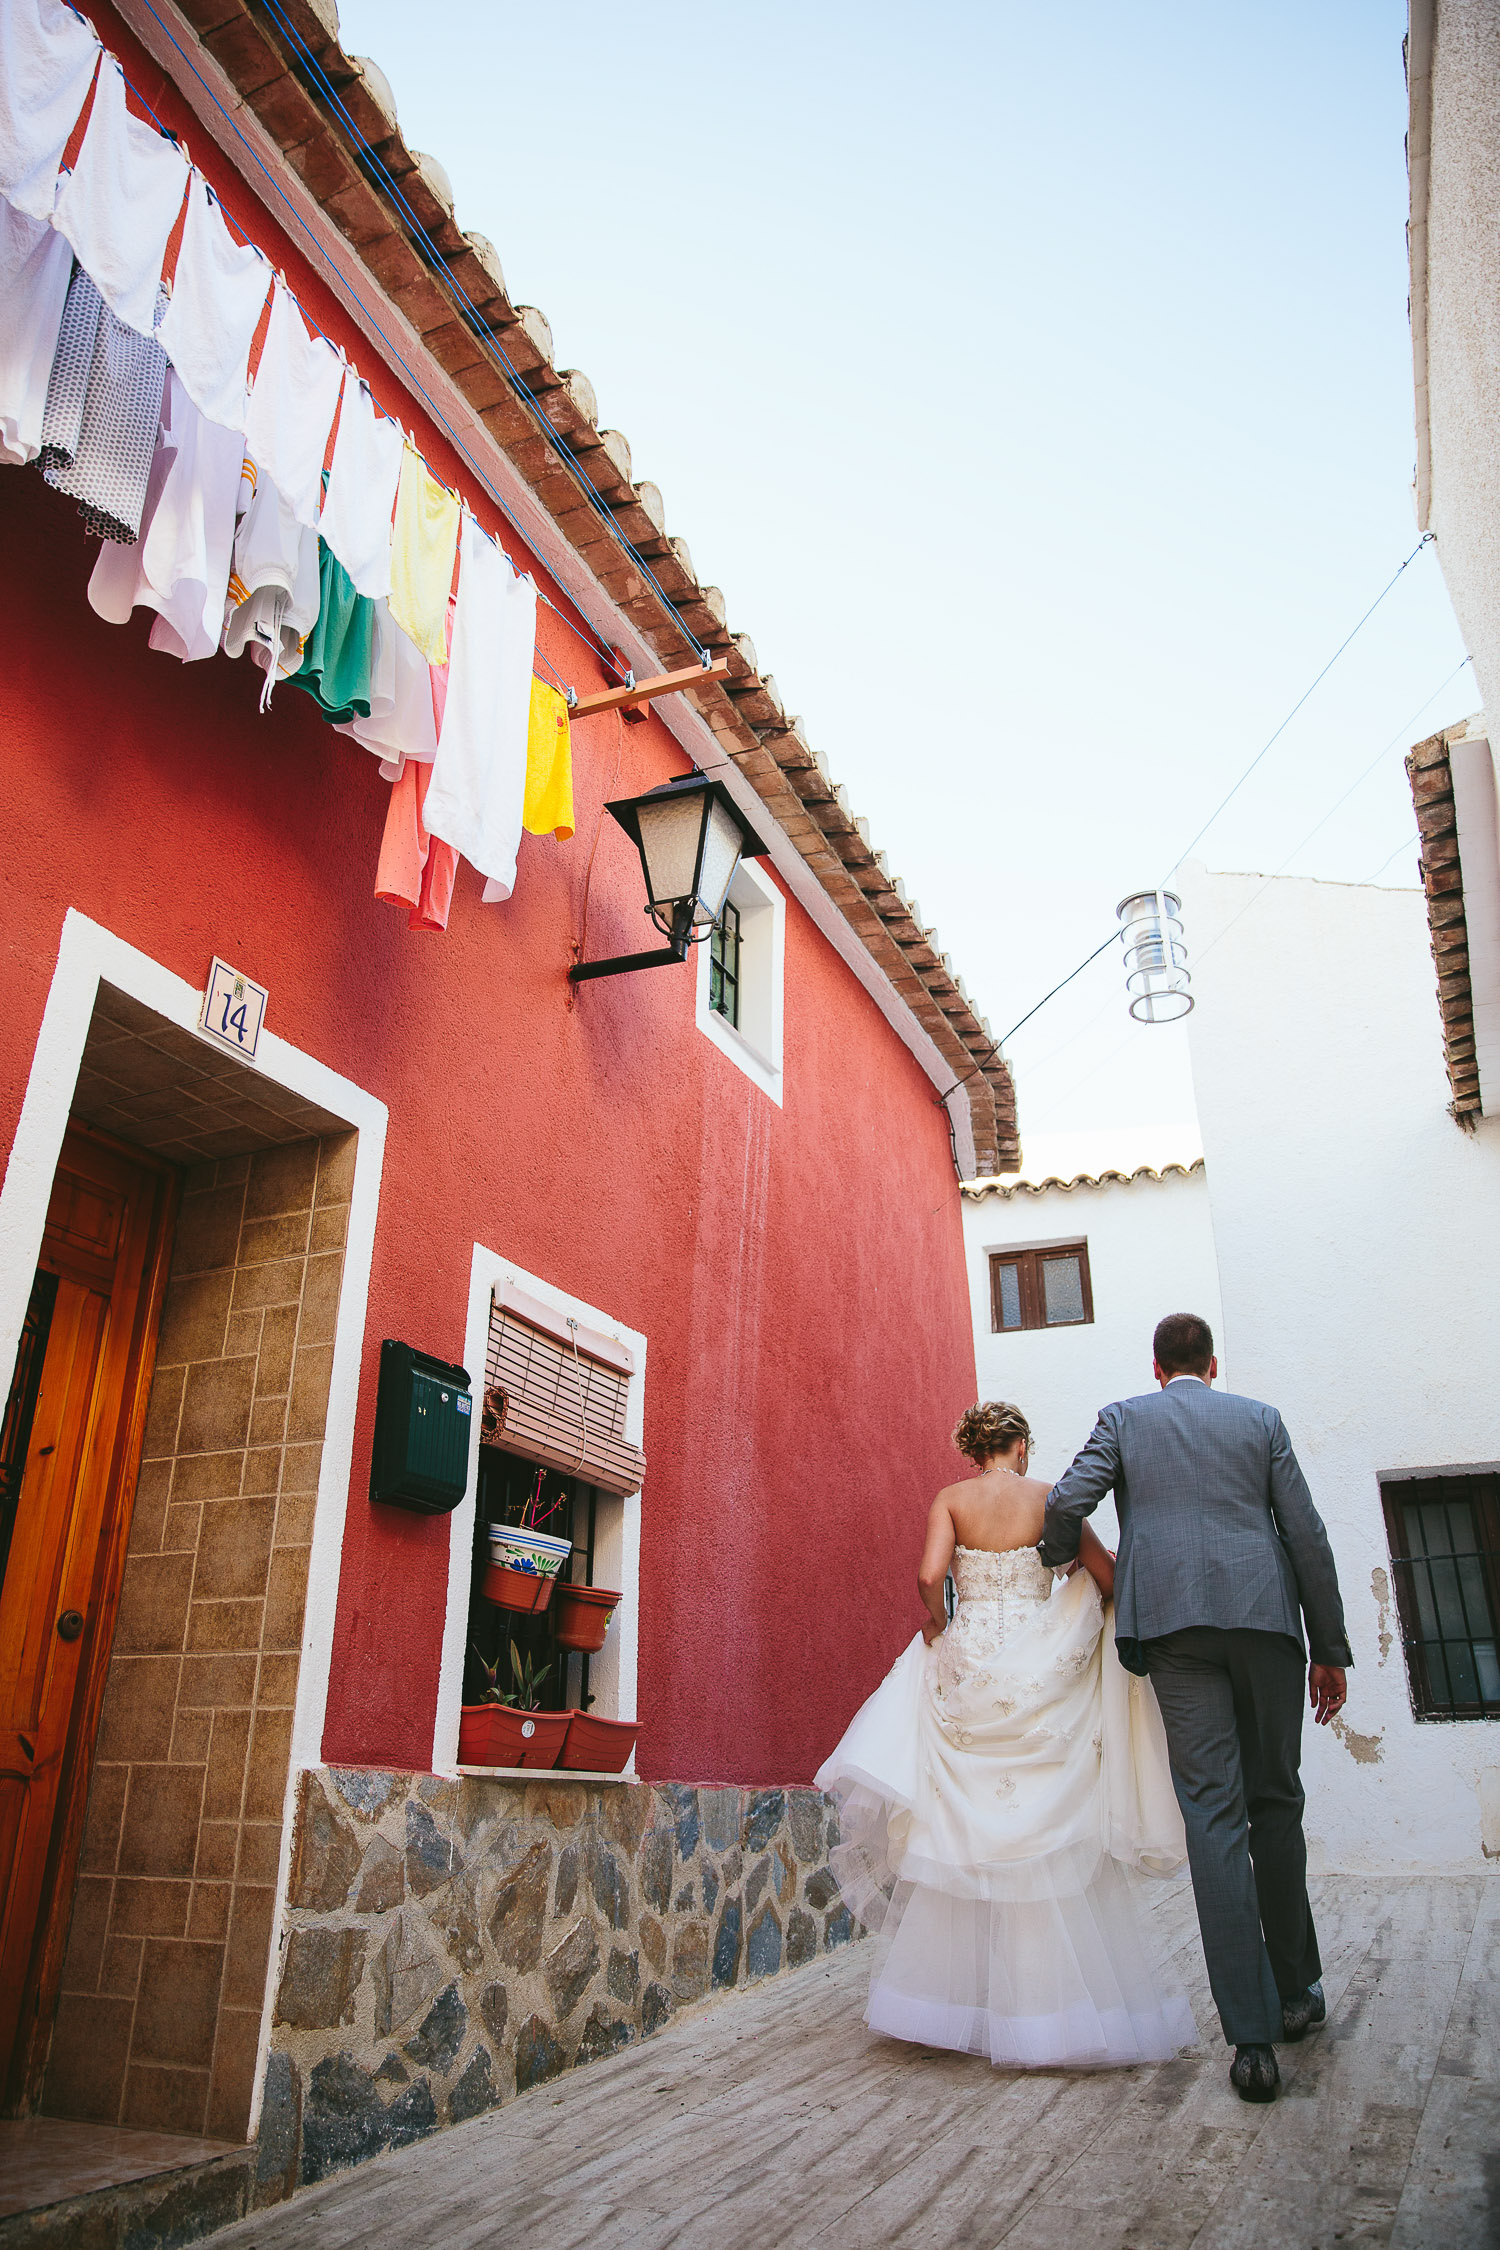 SOL Y MAR CALPE COSTA BLANCA WEDDING PHOTOGRAPHER